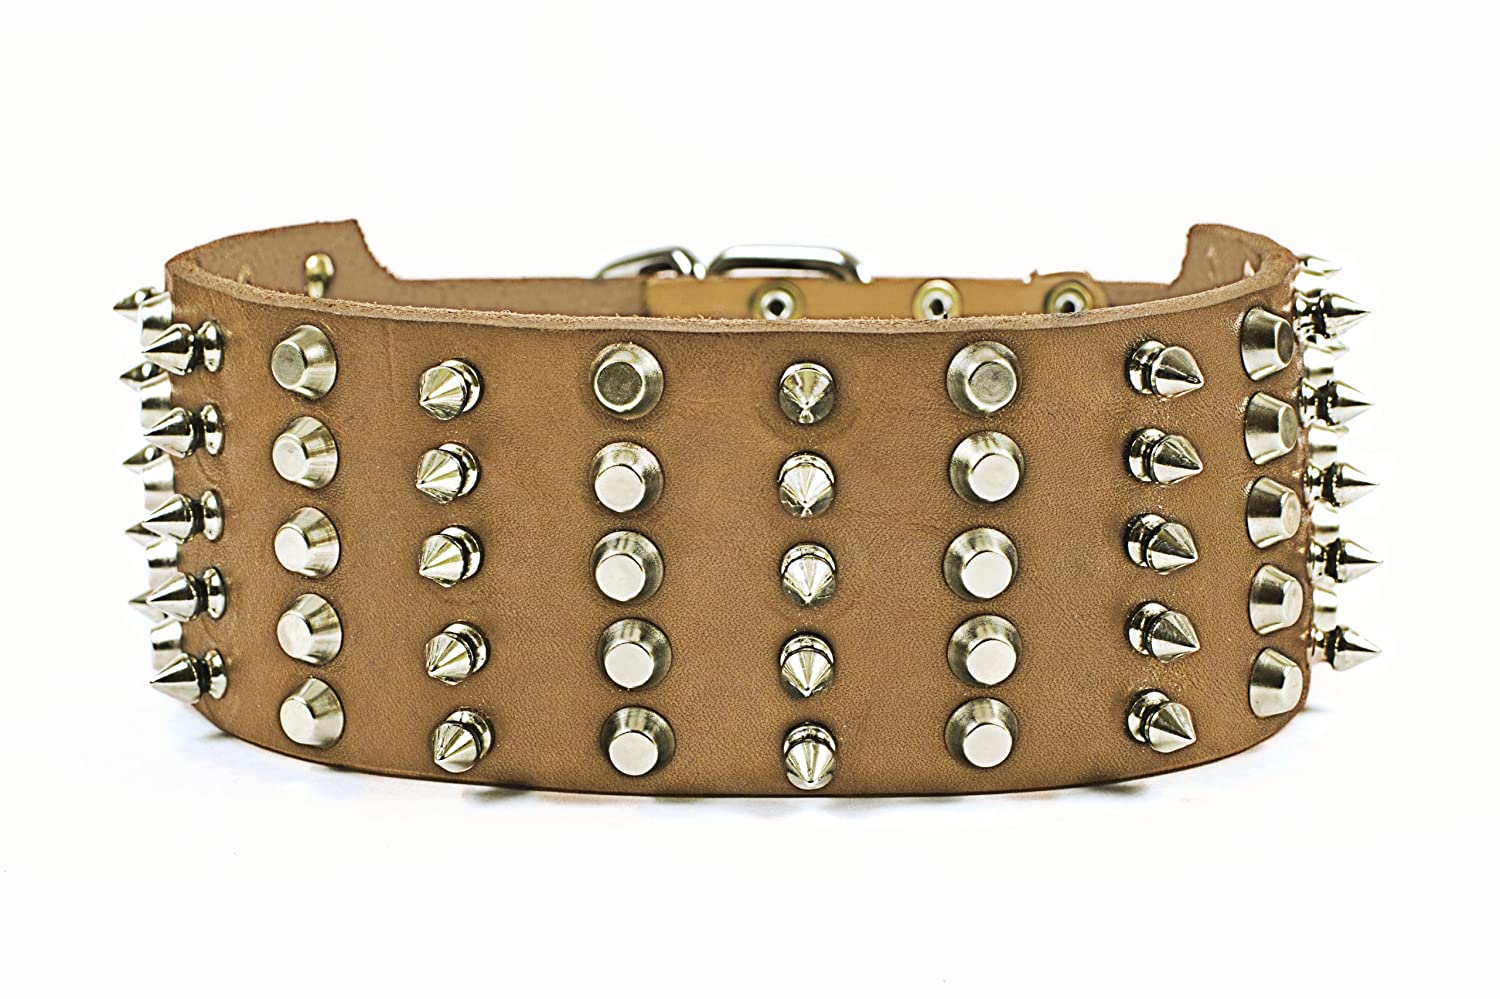 Dean and Tyler WIDE HEAVEN , Extra Wide Dog Collar with Nickel Spikes and Studs Tan Size 20-Inch by 2-3 4-Inch Fits Neck 18-Inch to 22-Inch